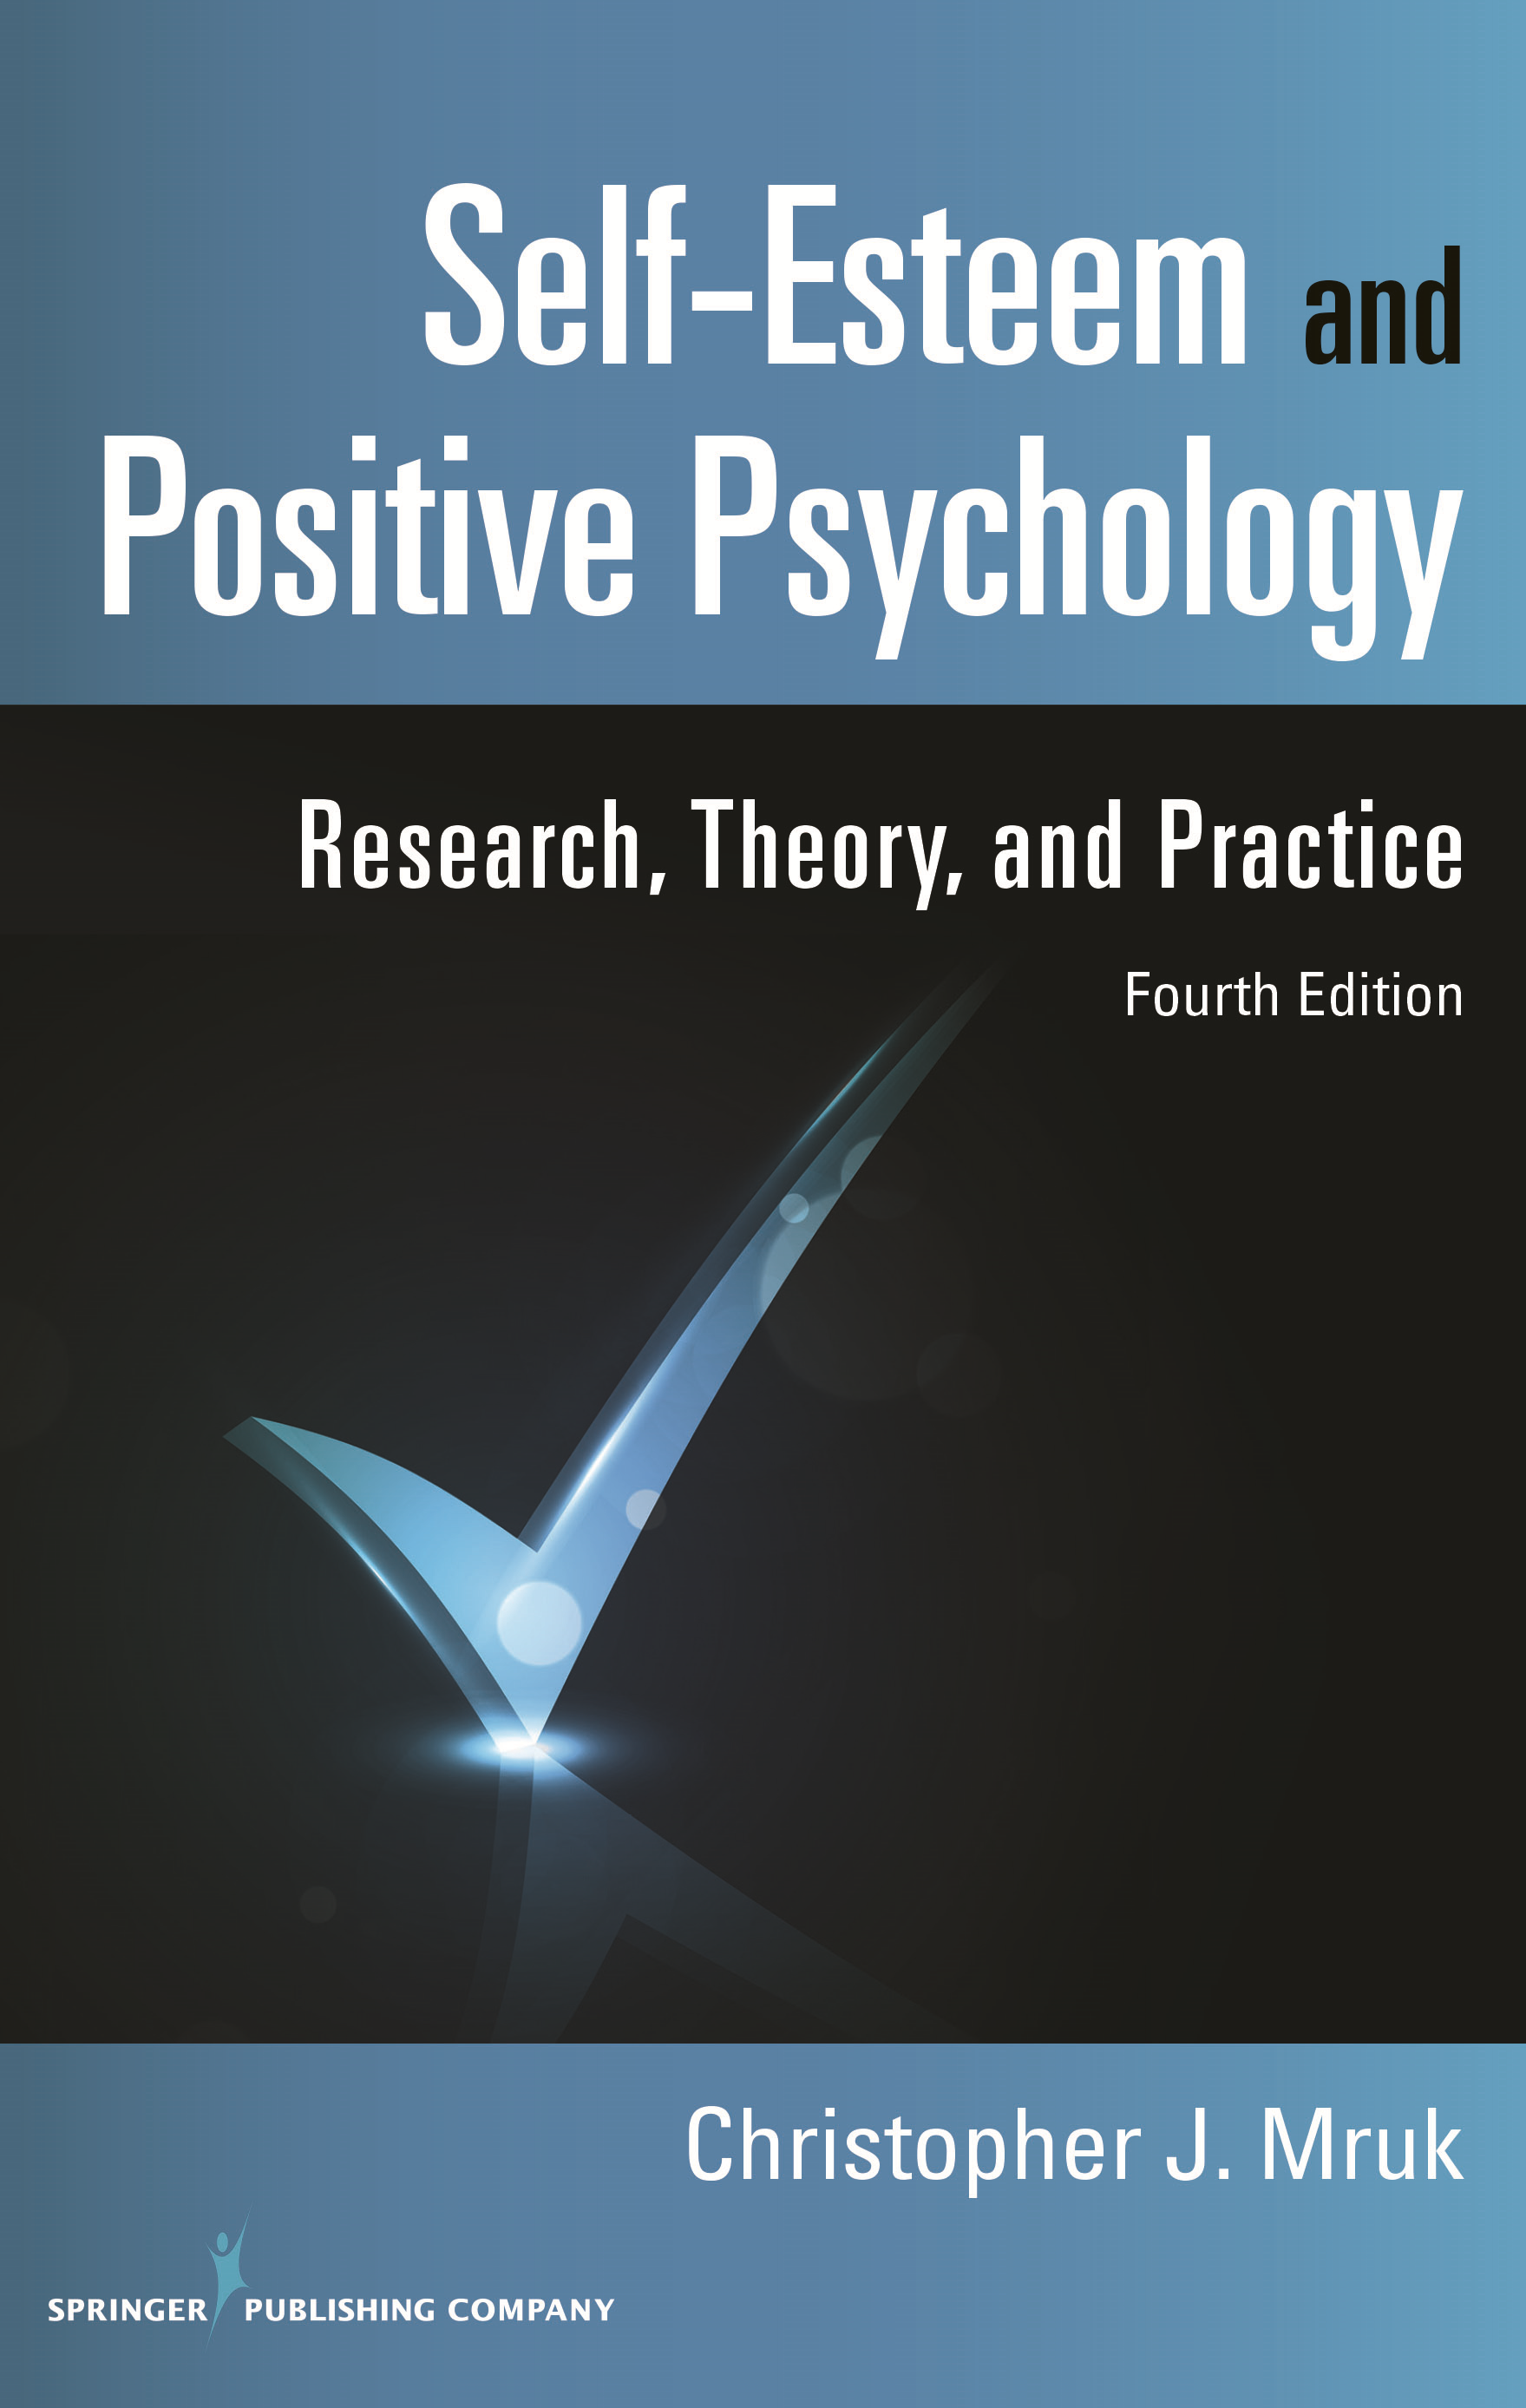 Self-Esteem and Positive Psychology, 4th Edition